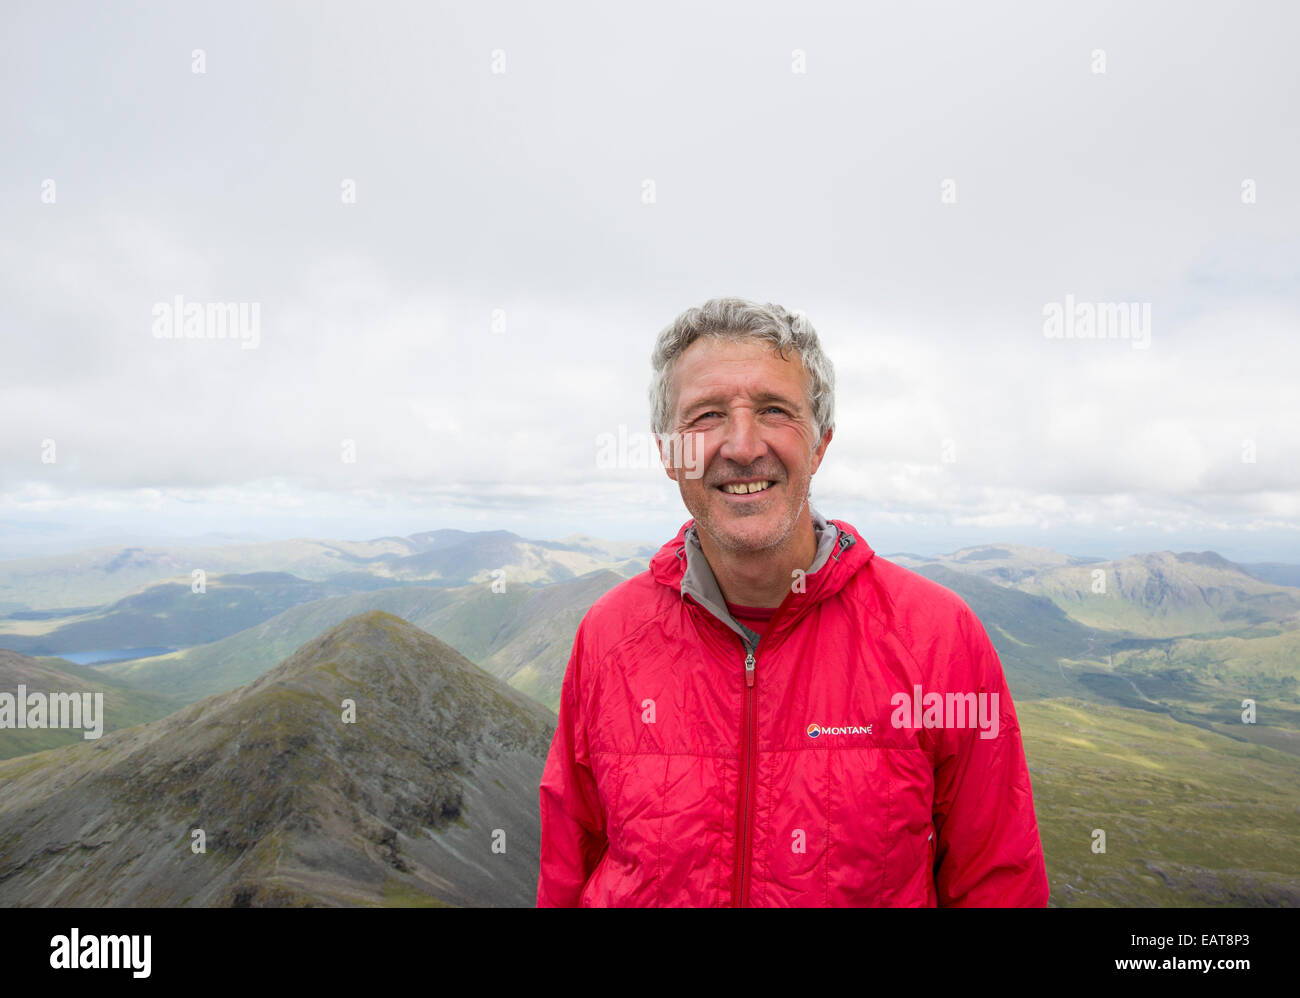 A Munro bagger on the summit of Ben More, a Munro on the Isle of Mull, Scotland, UK. - Stock Image